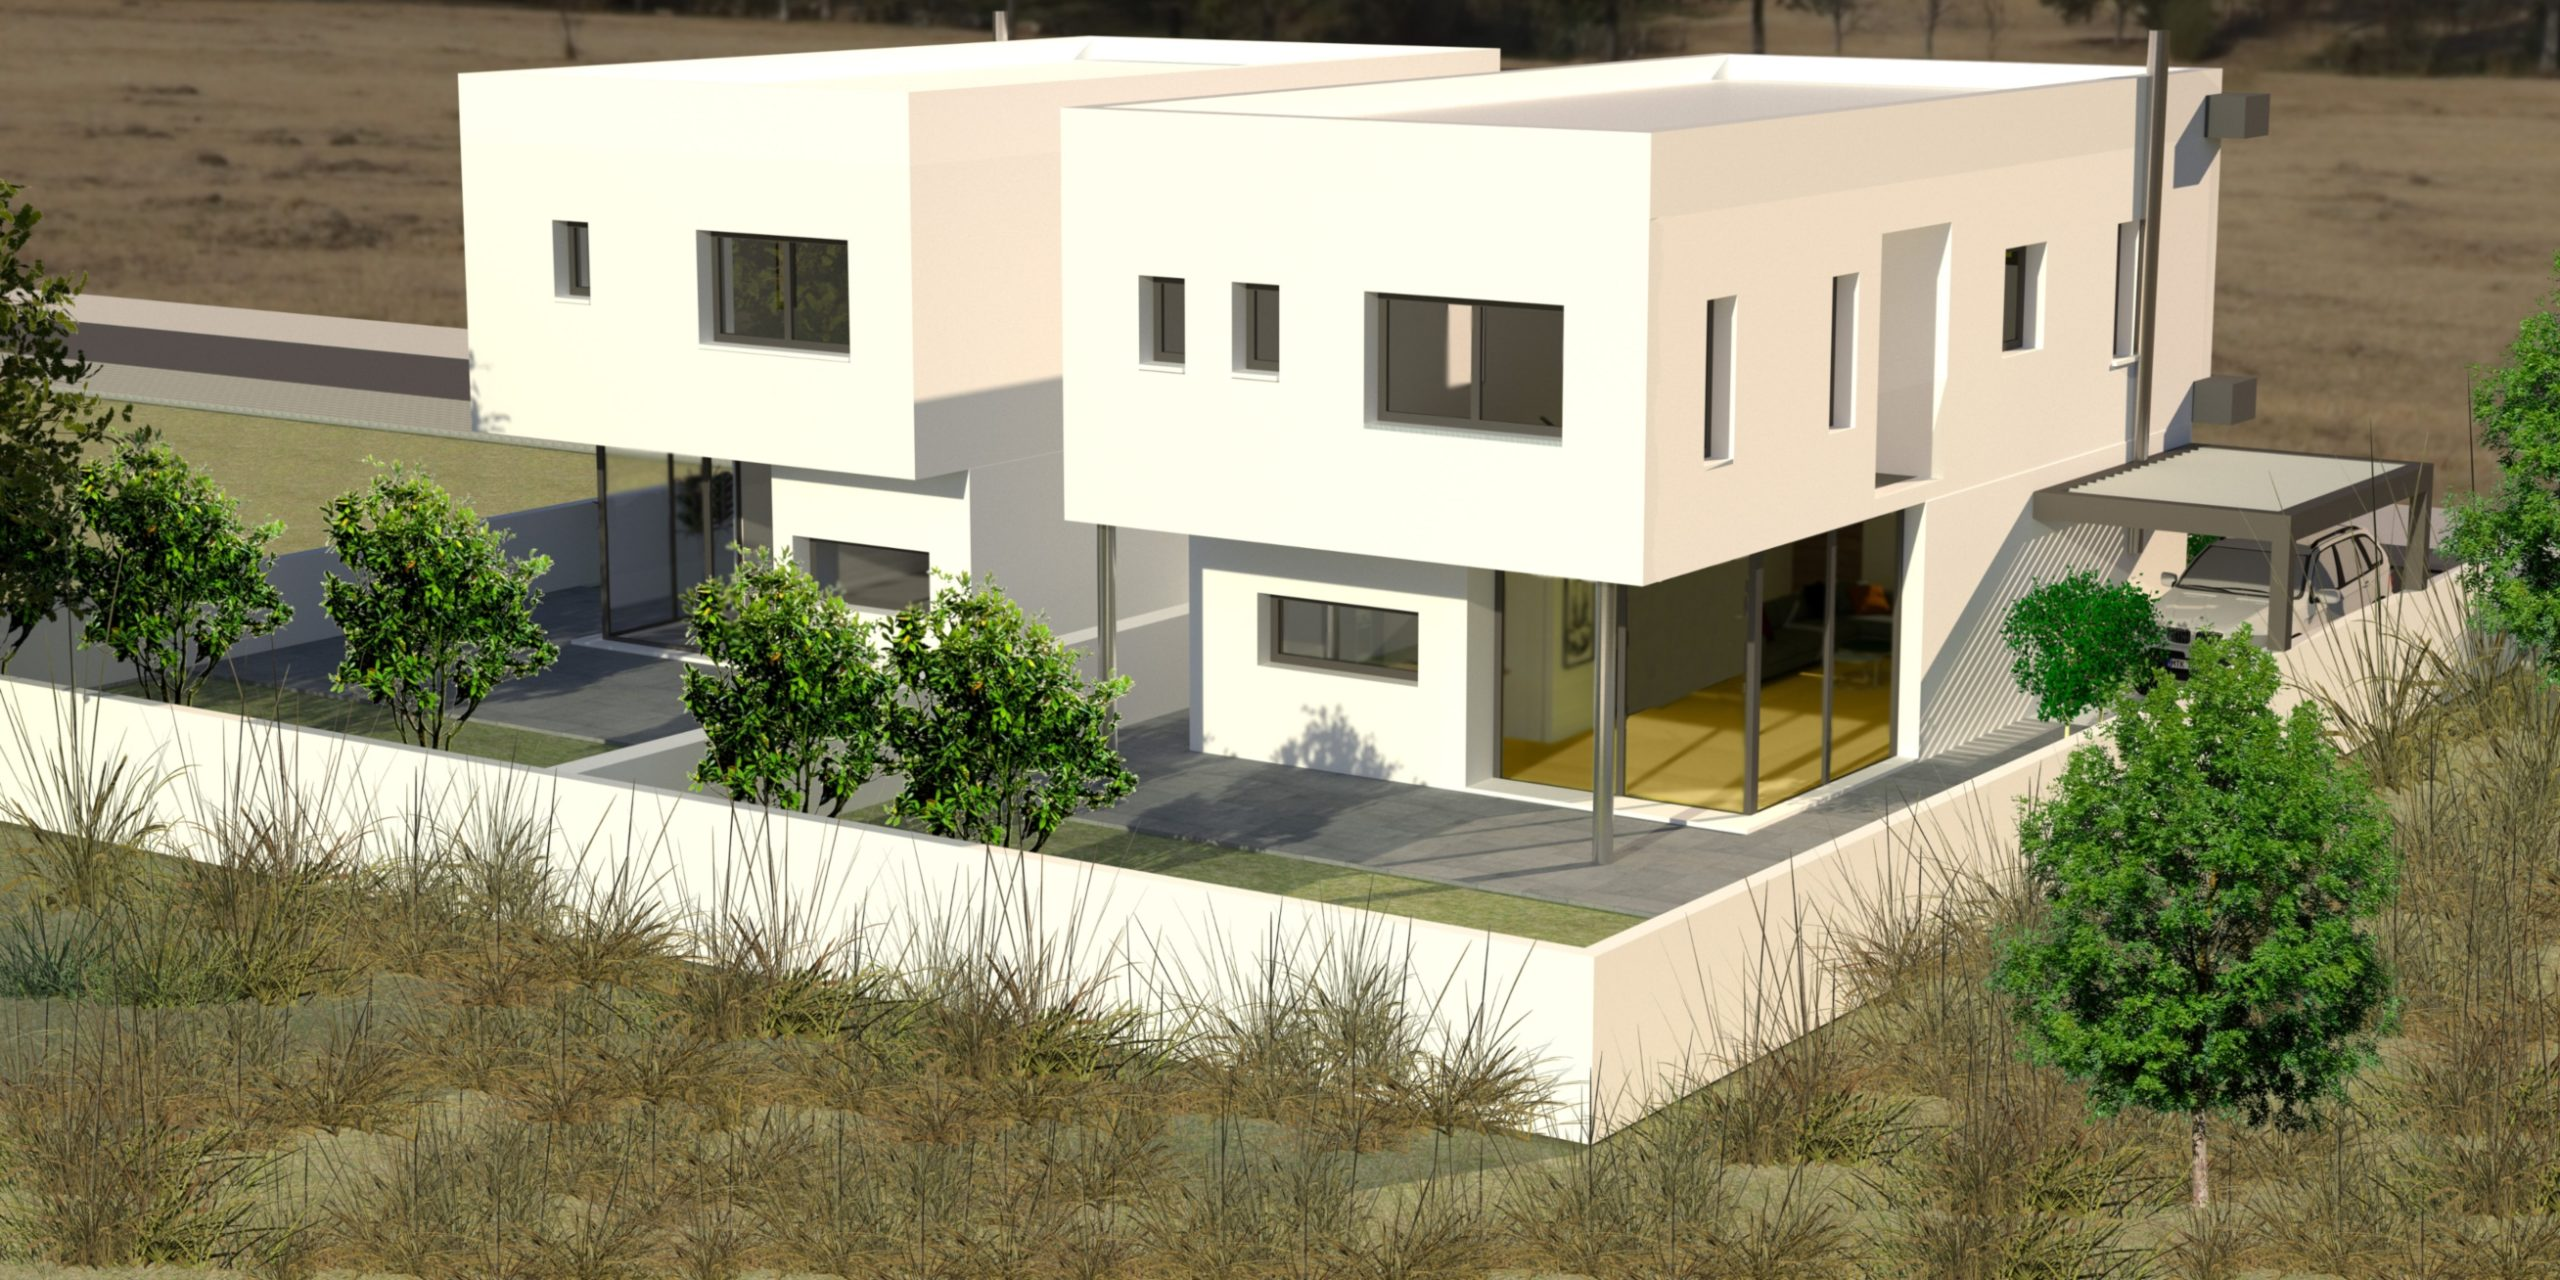 3 Bedroom House For Sale in Kallithea